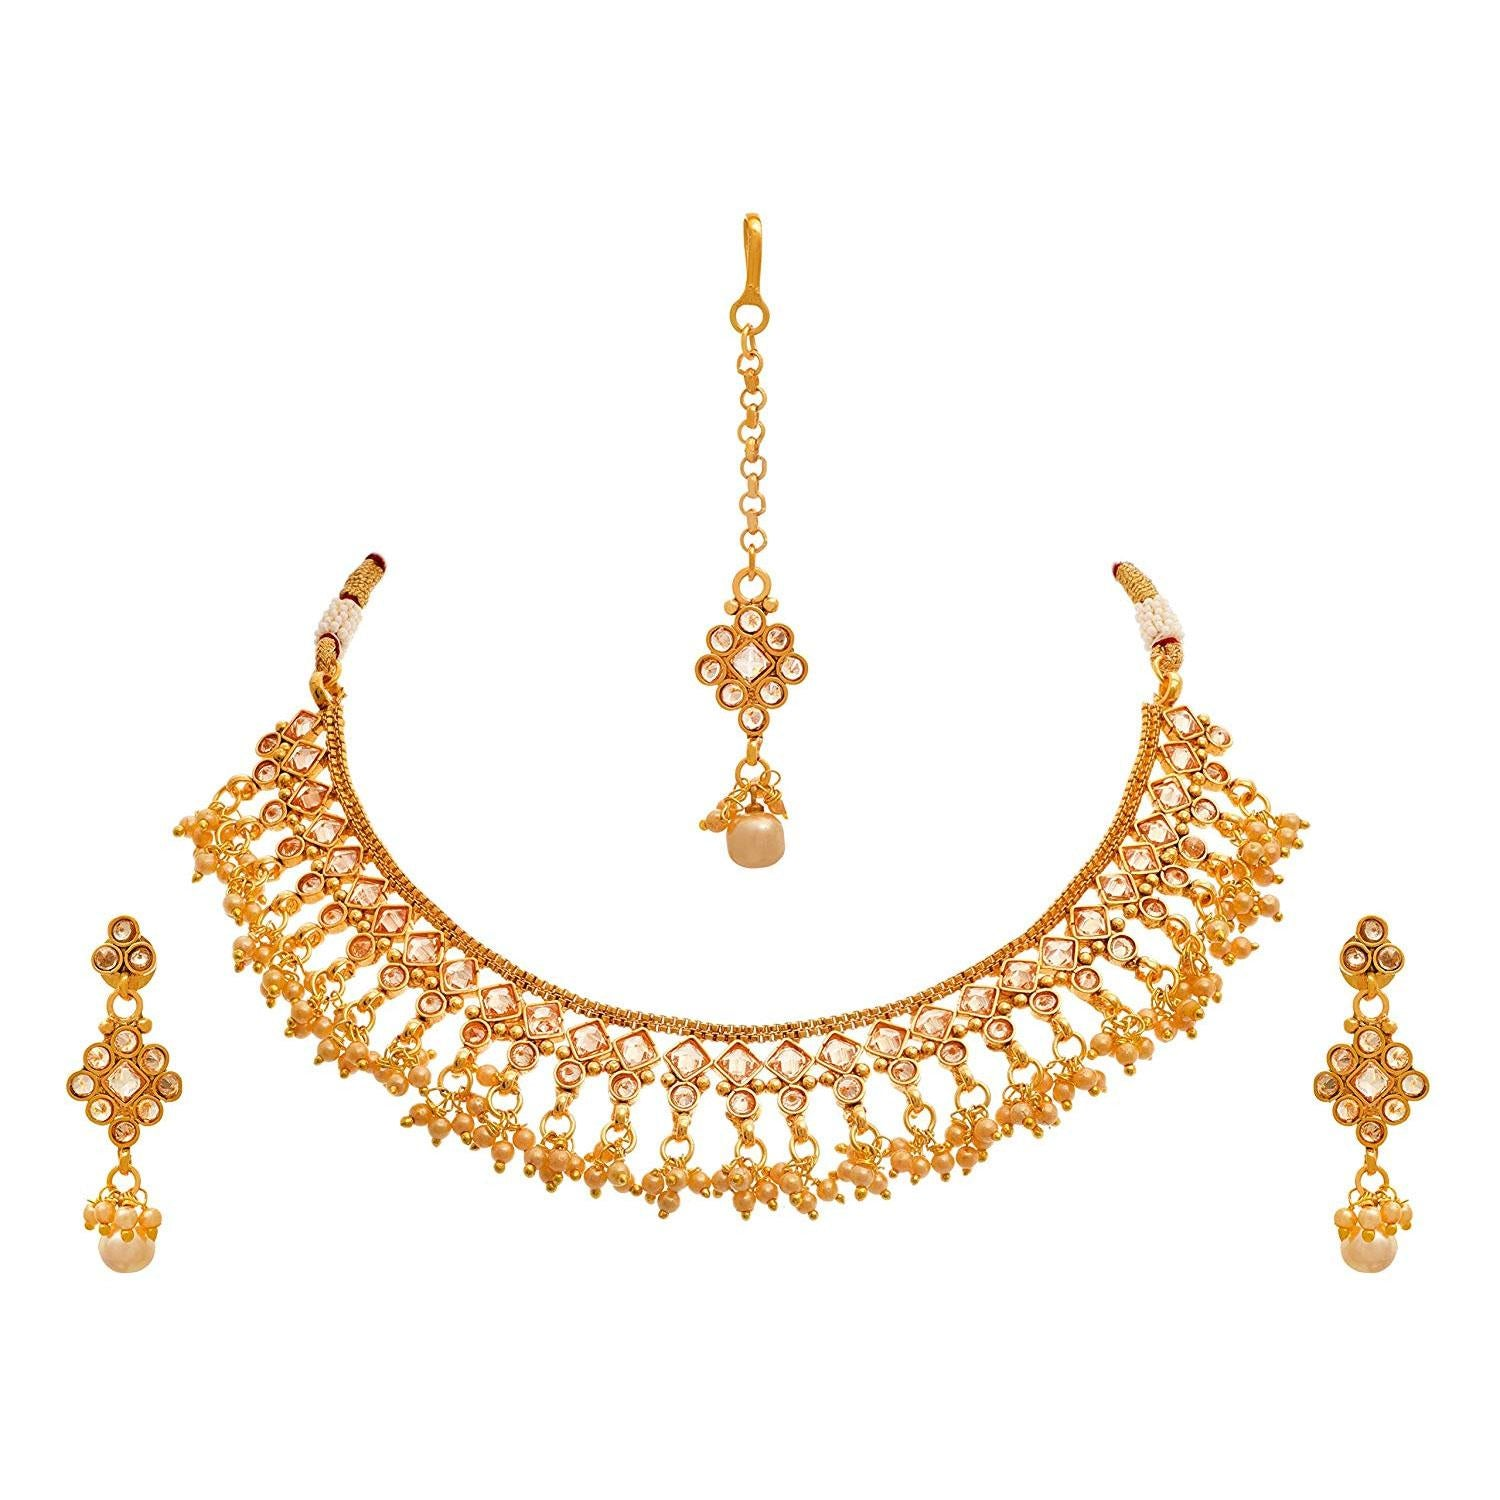 JFL - Jewellery for Less One Gram Gold Plated Champagne Diamond & Pearl Designer Necklace Set / Jewellery Set for Women